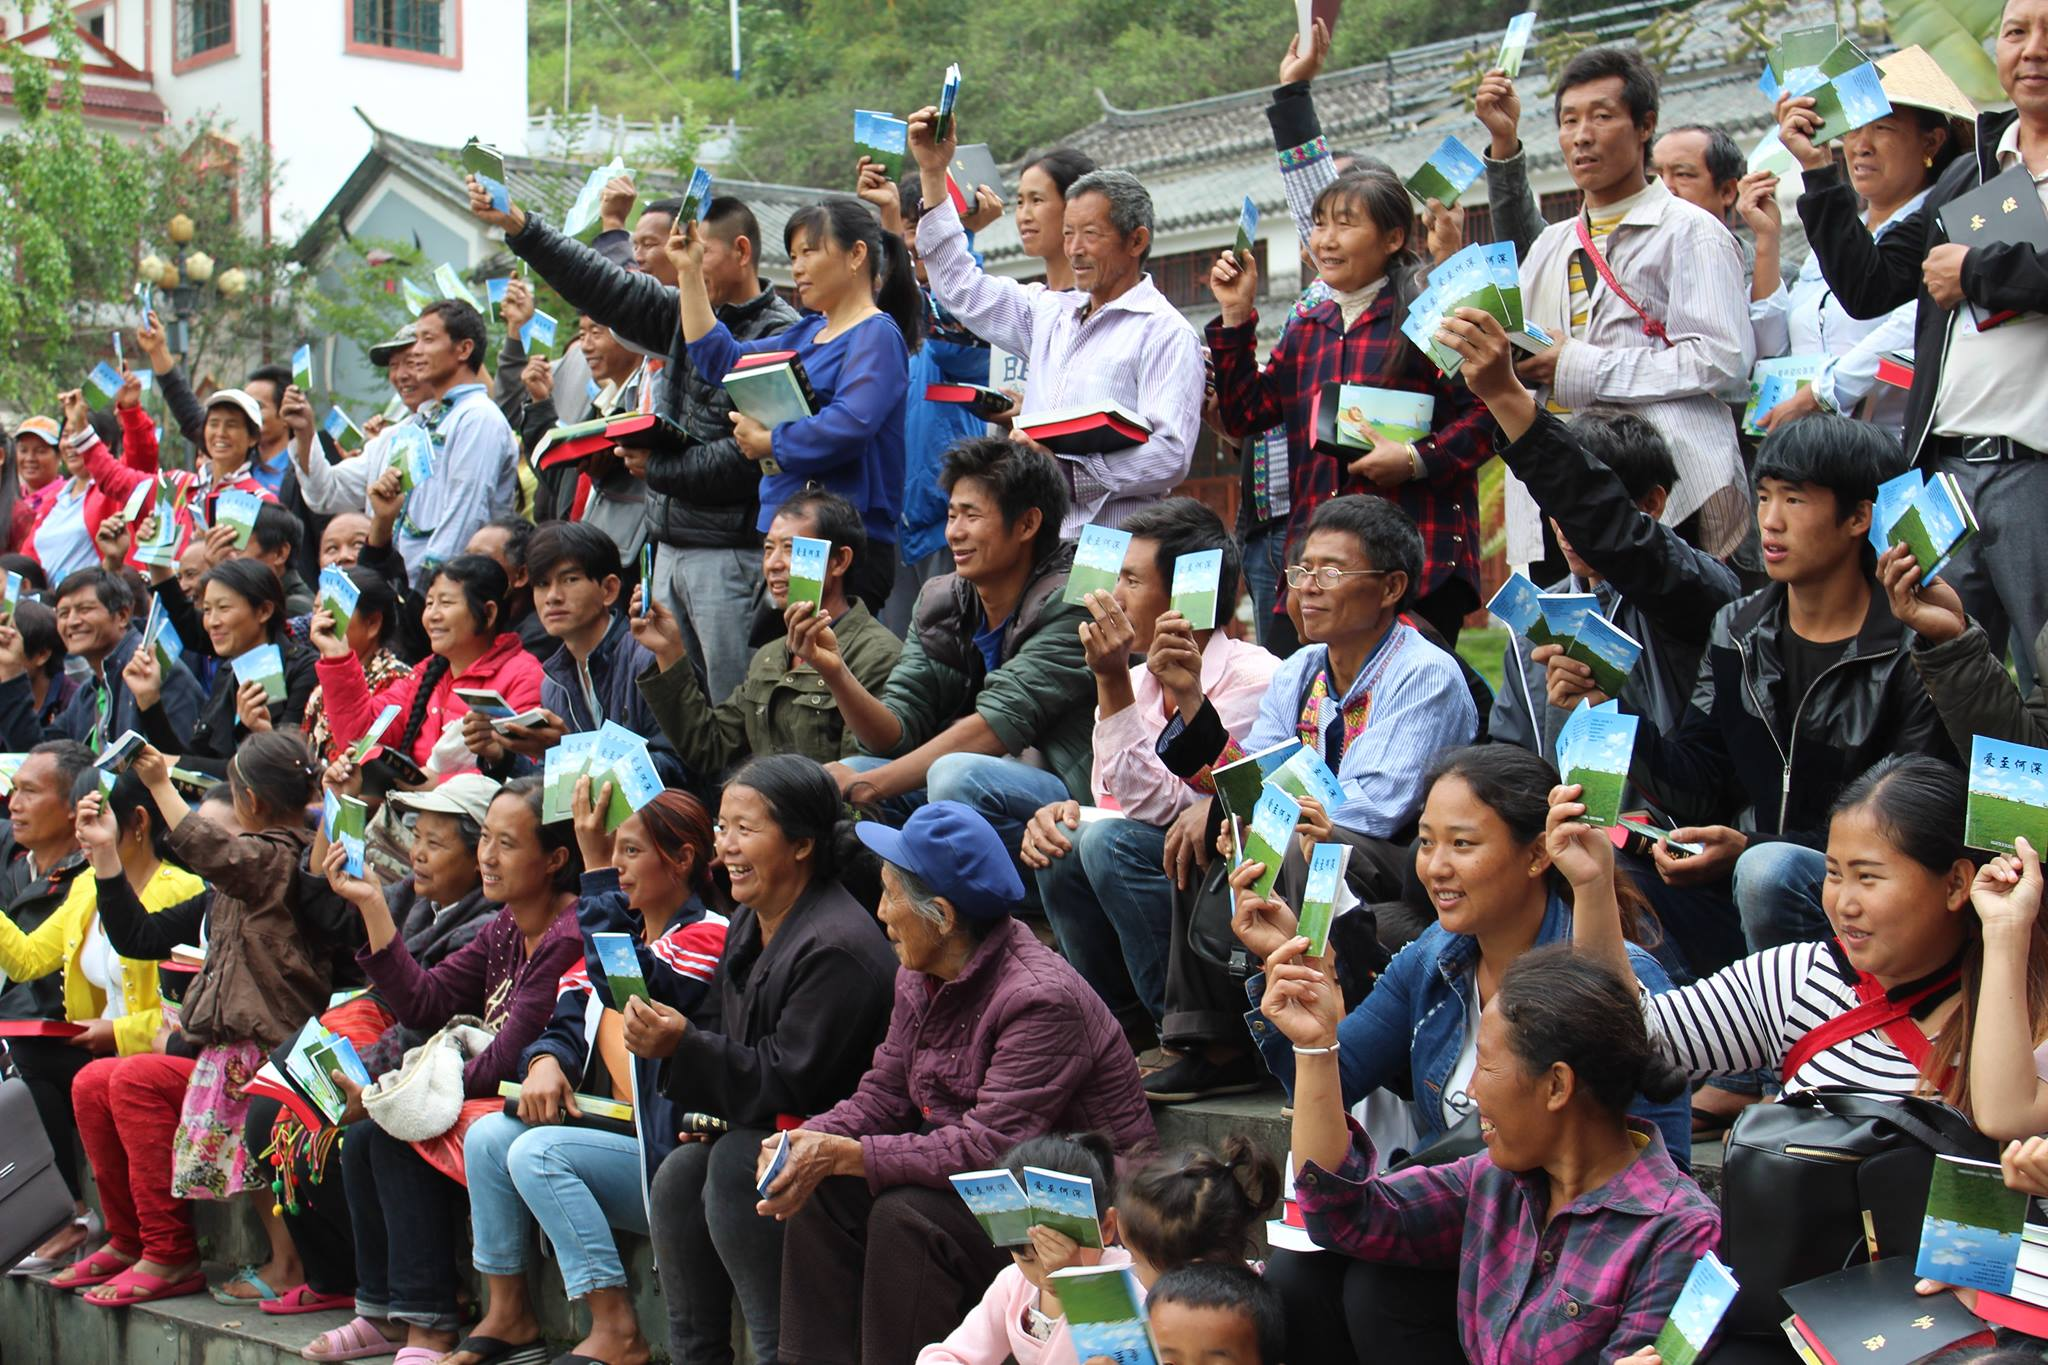 Hallmark trip to China sees legal distribution of Bibles